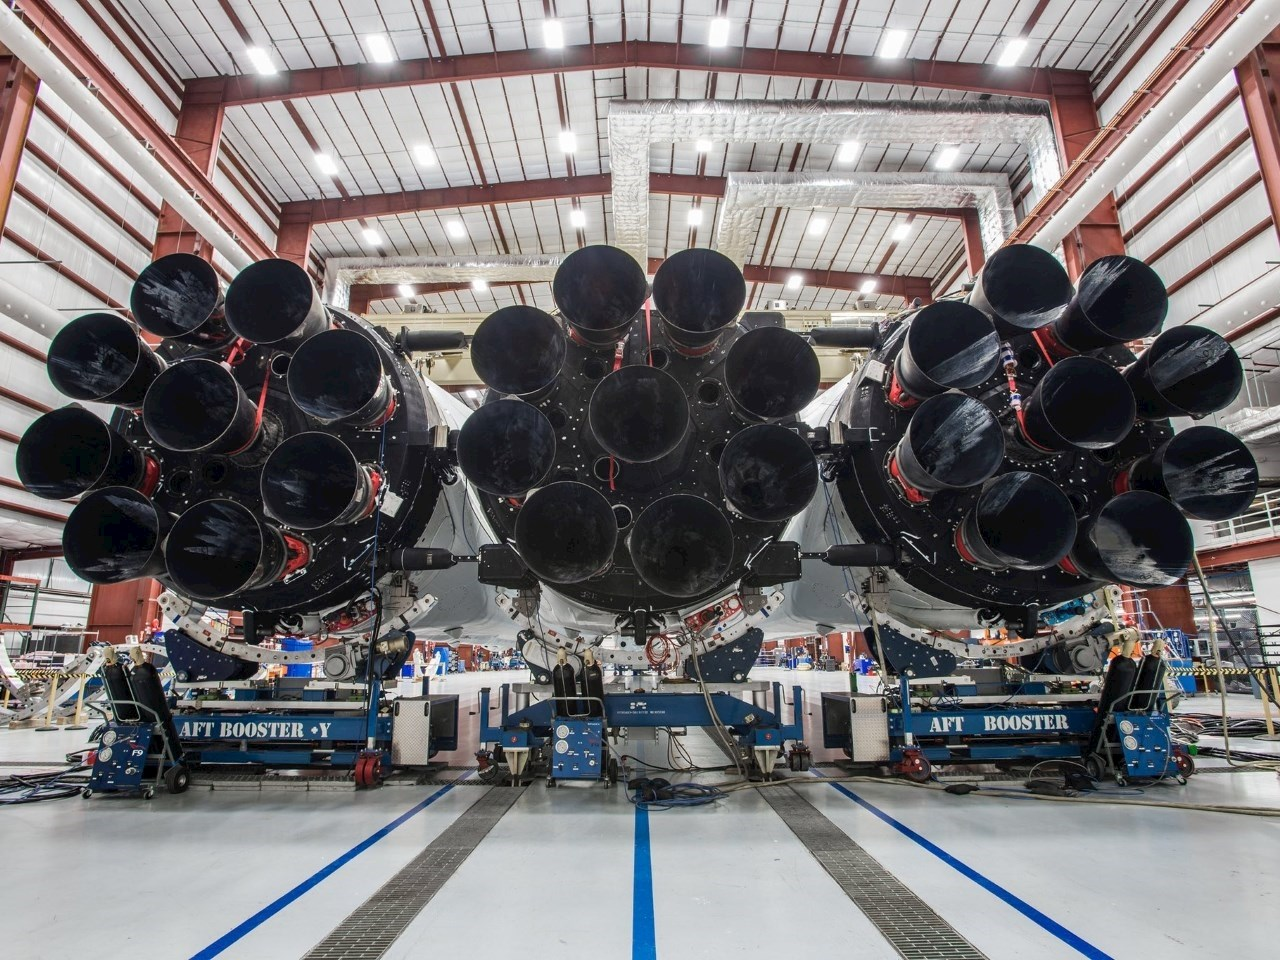 The 27 engines of SpaceX's Falcon Heavy rocket